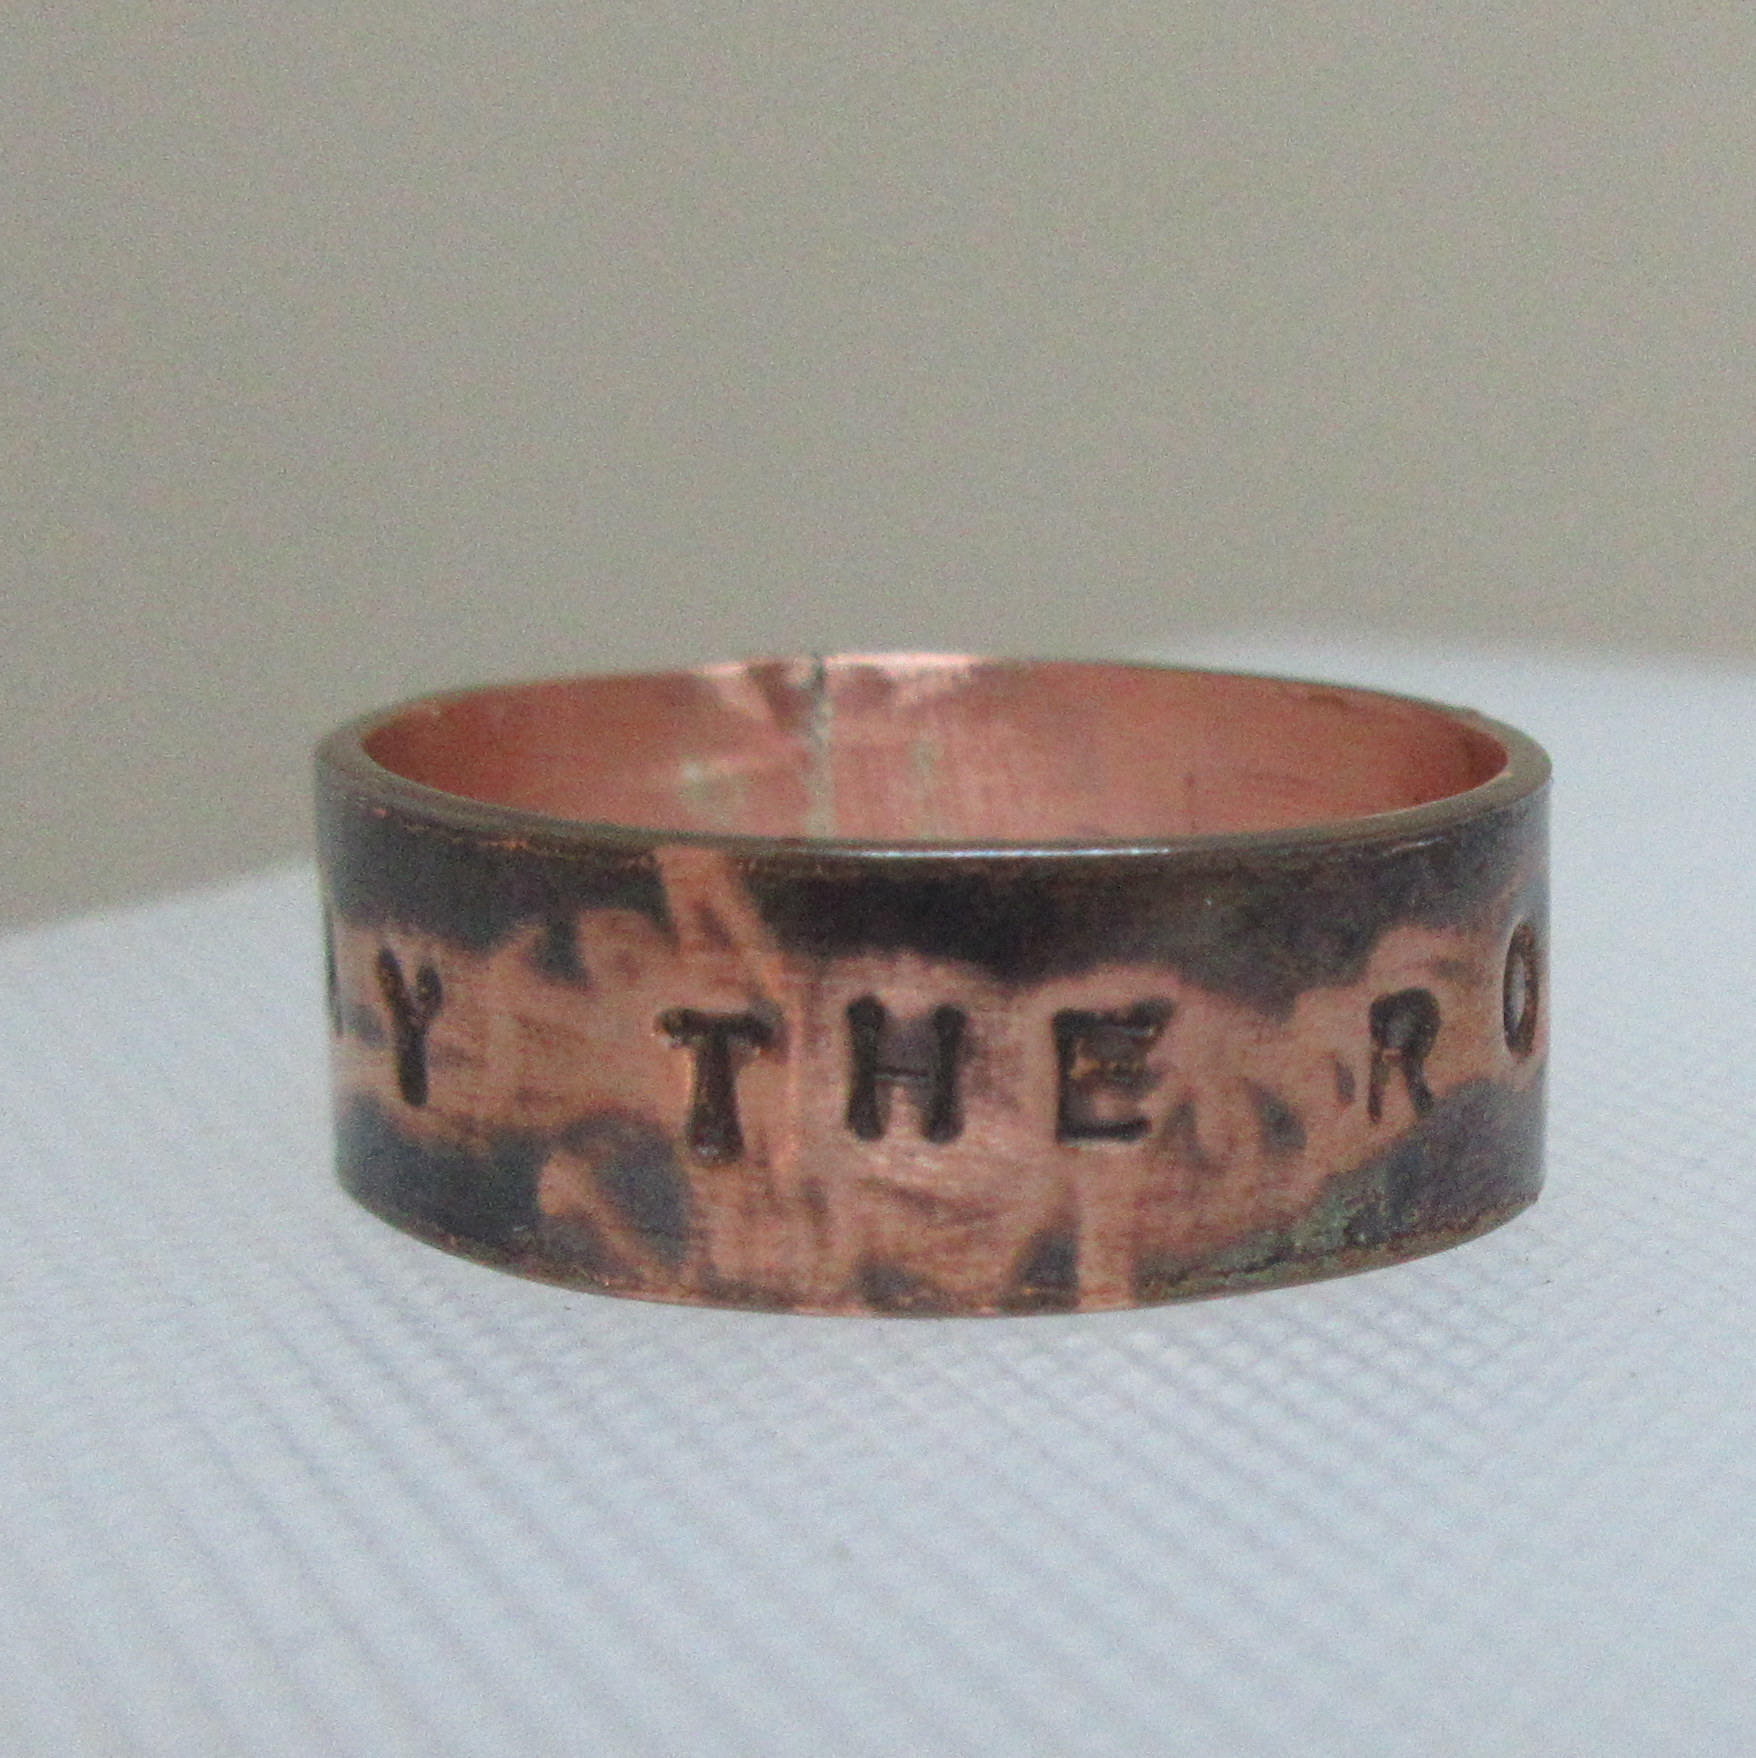 Pray The Rosary Ring Mixed Metal Catholic Ring in Size 7.5